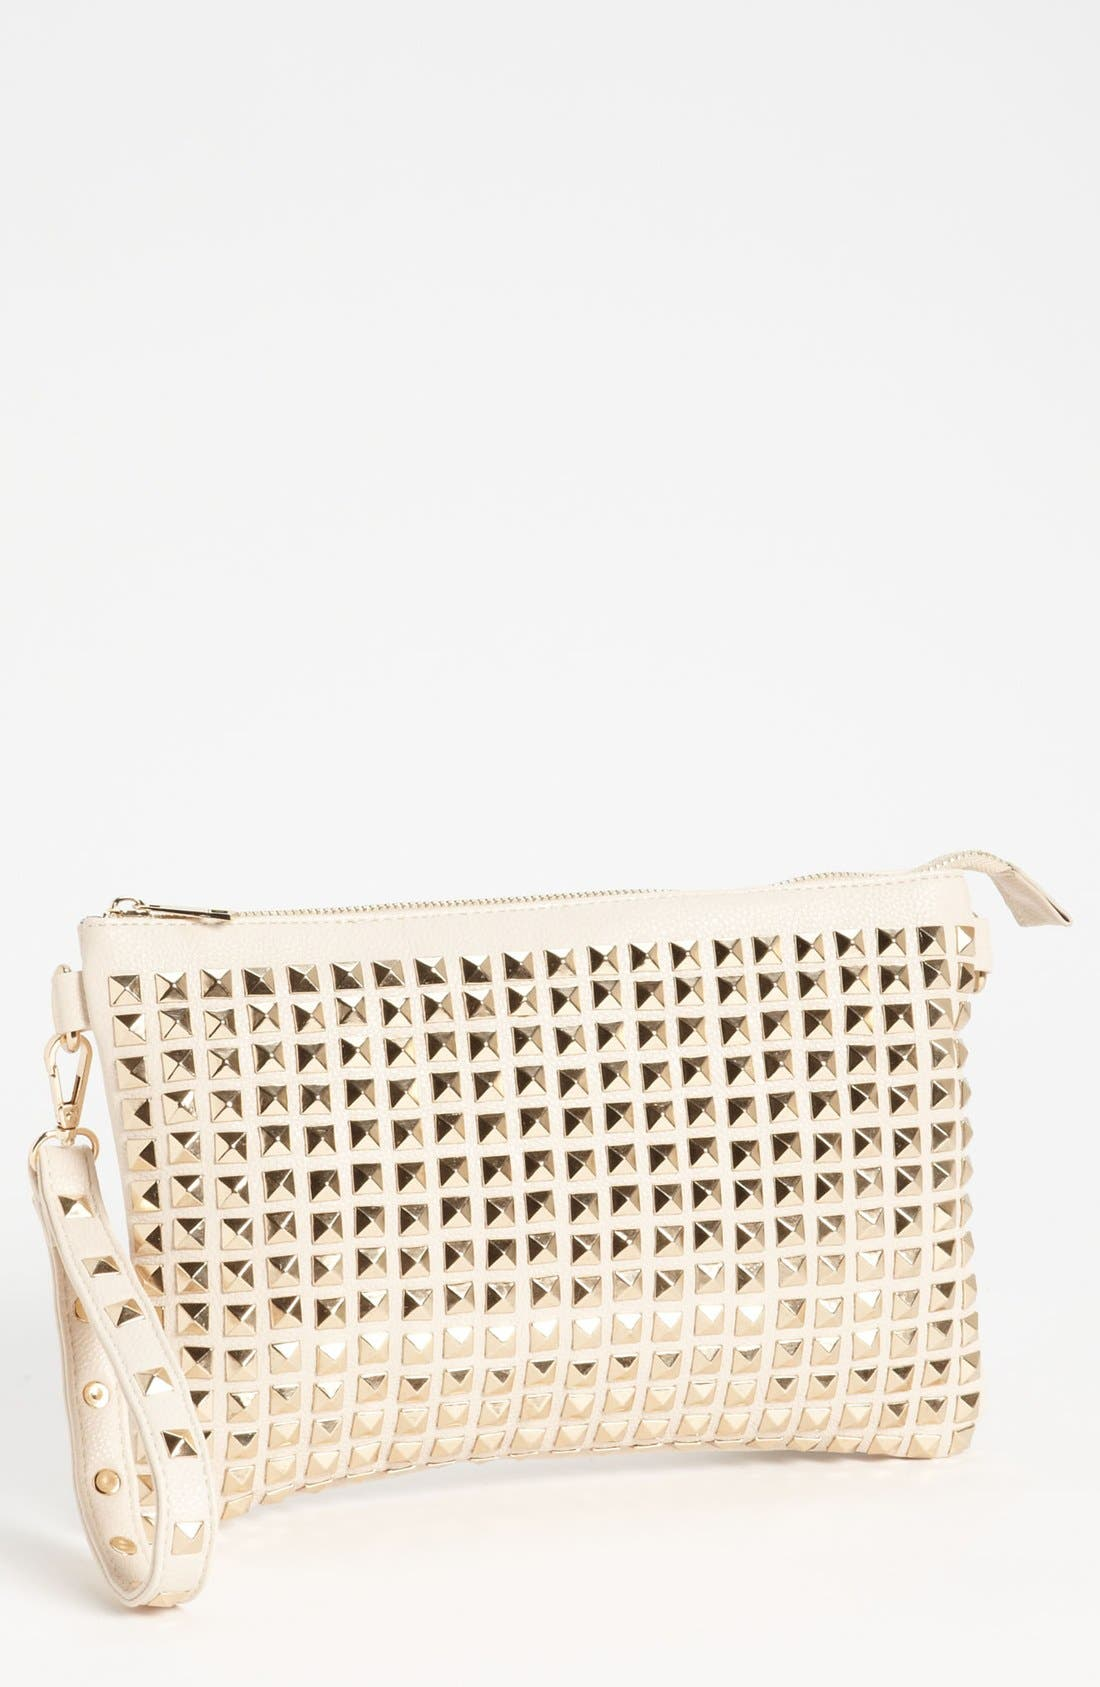 Main Image - De L'avion Studded Crossbody Clutch